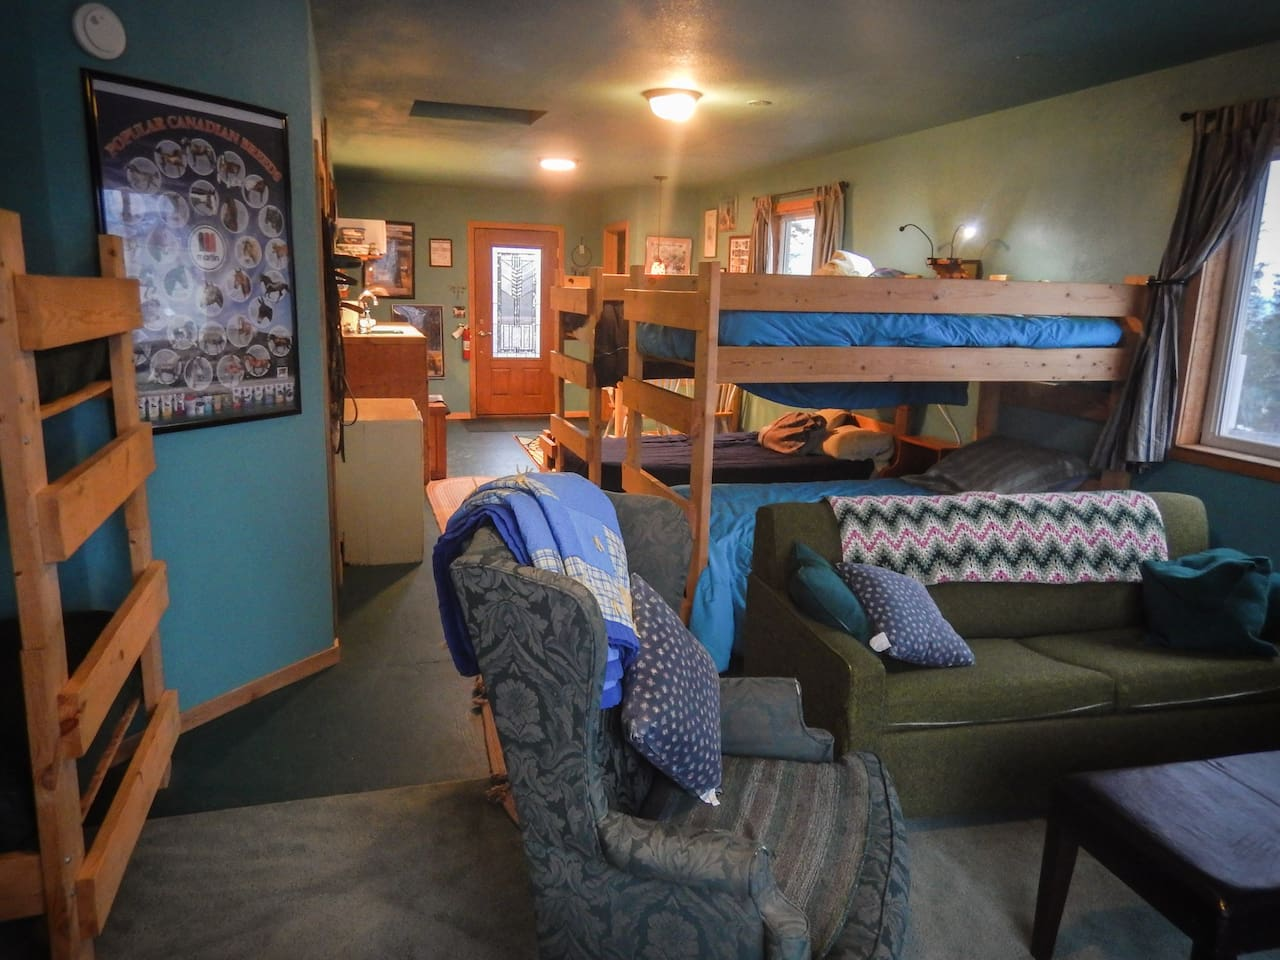 Bunks, lounge area, and kitchenette